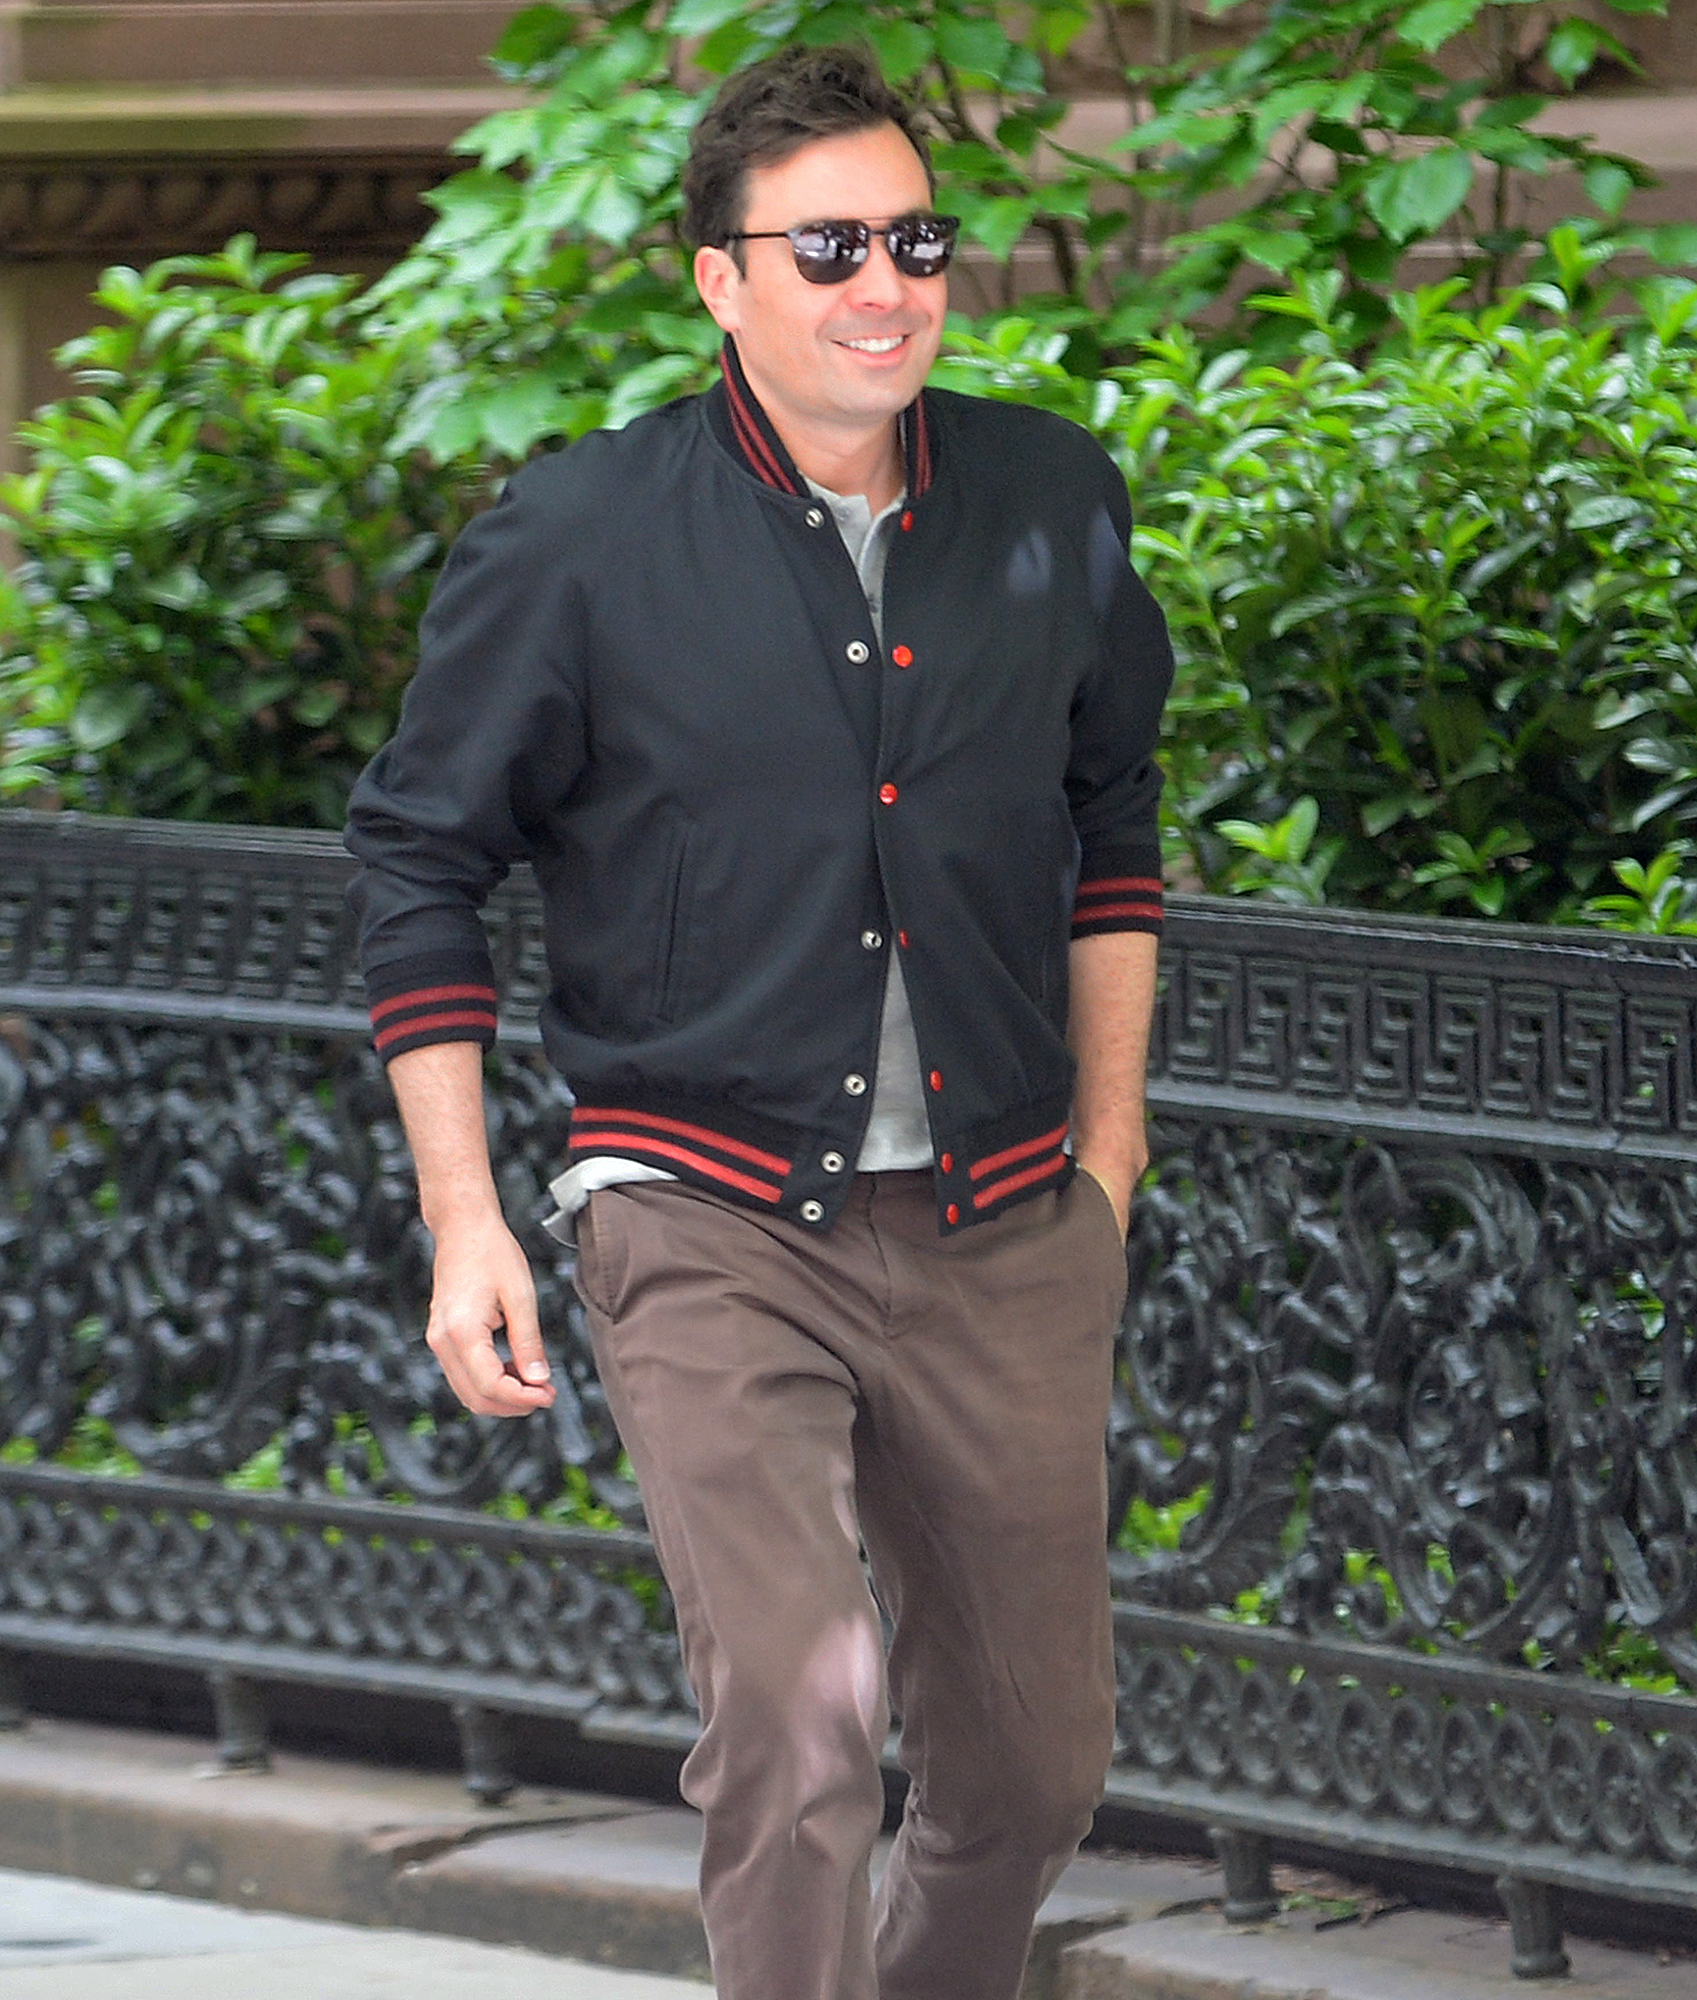 EXCLUSIVE: Jimmy Fallon flashes a smile on his way to work at The Tonight Show in New York.